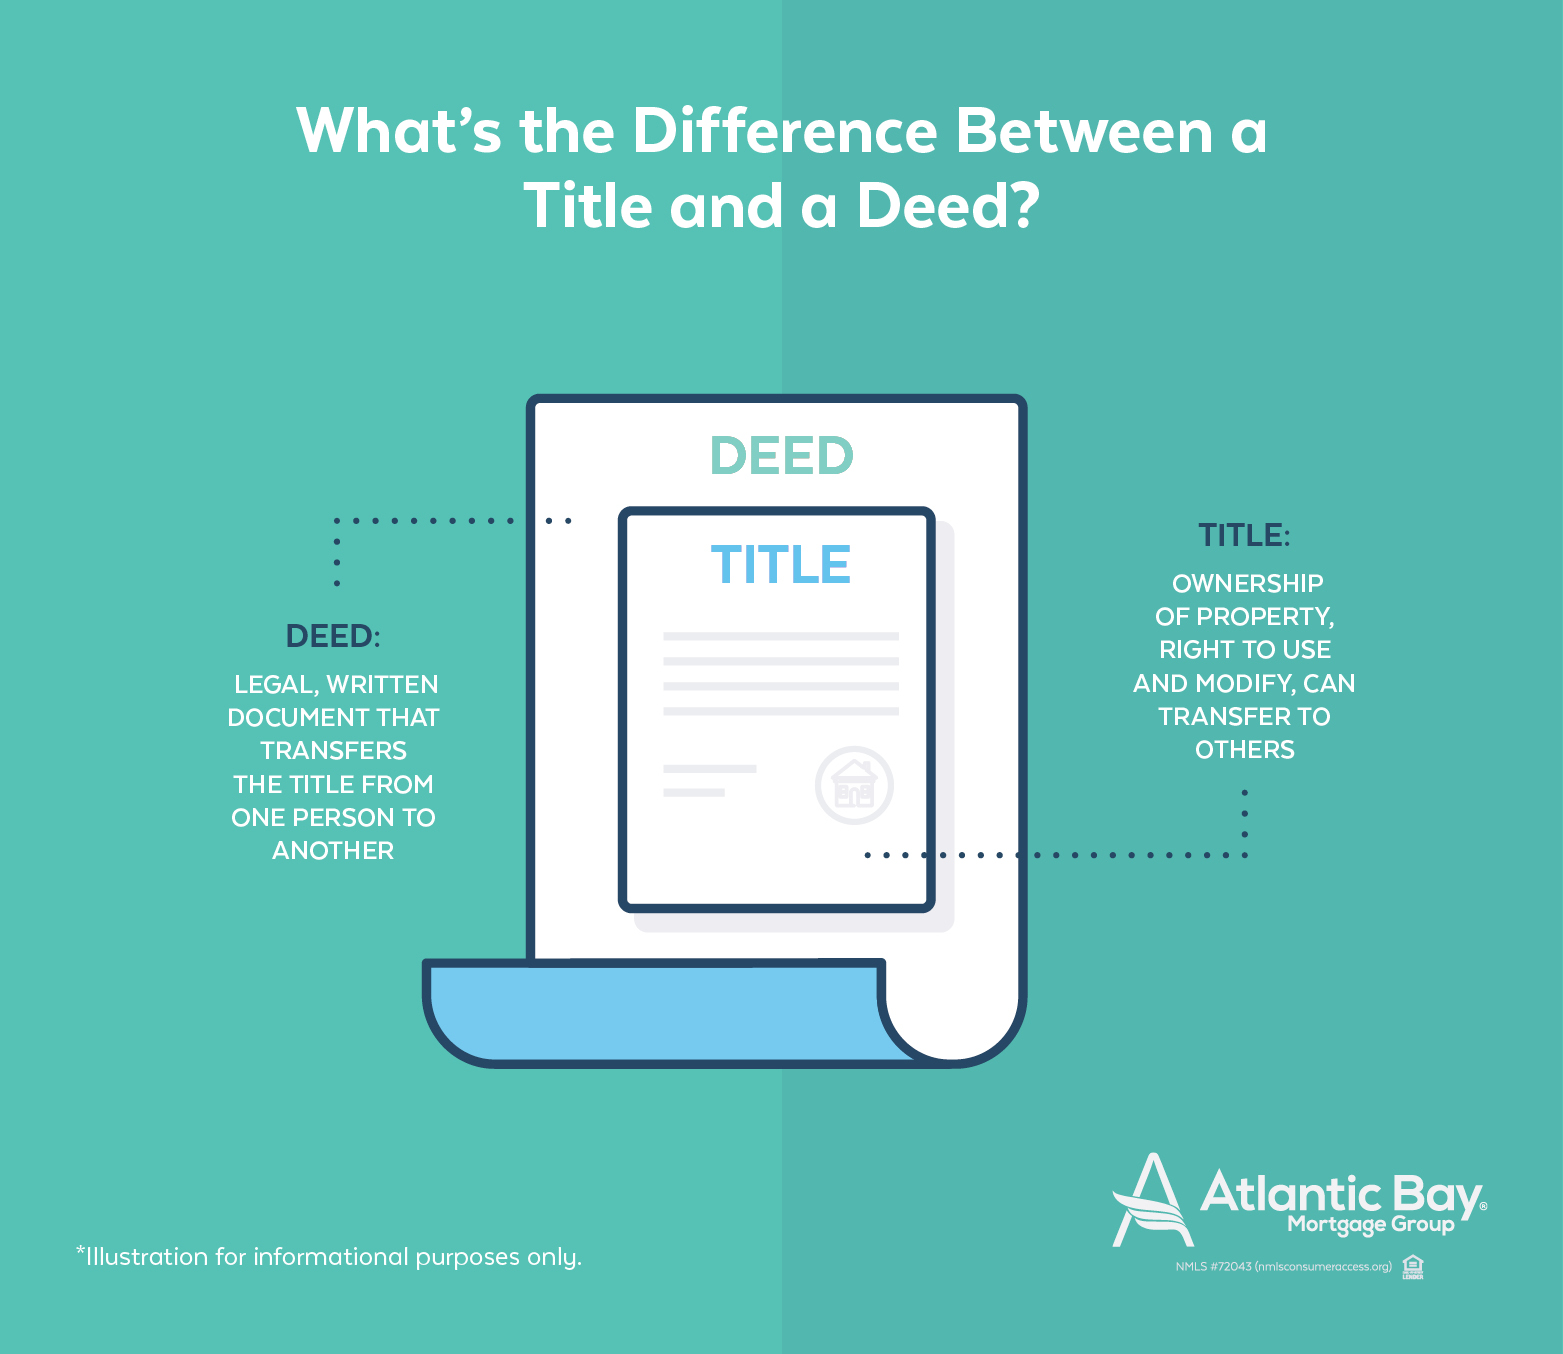 d91148afbca The difference between a title and a deed on a house